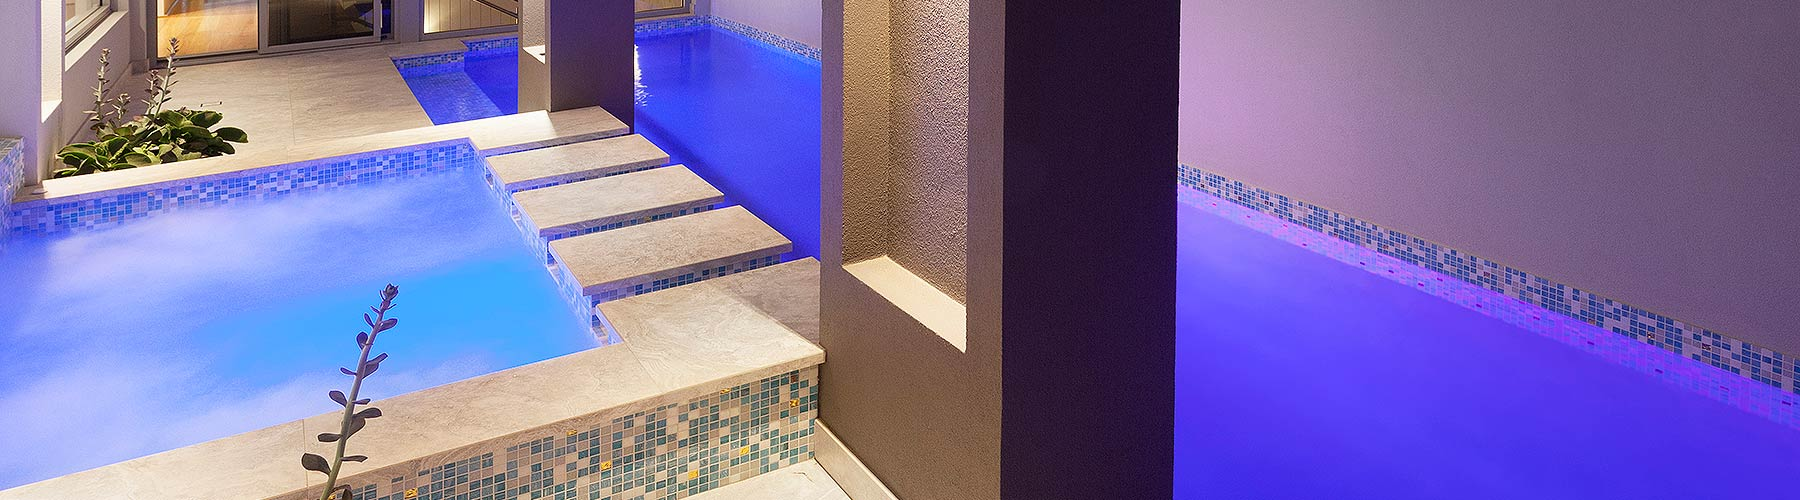 Coogee-Pool-Spa-Combo-Pools-by-Design